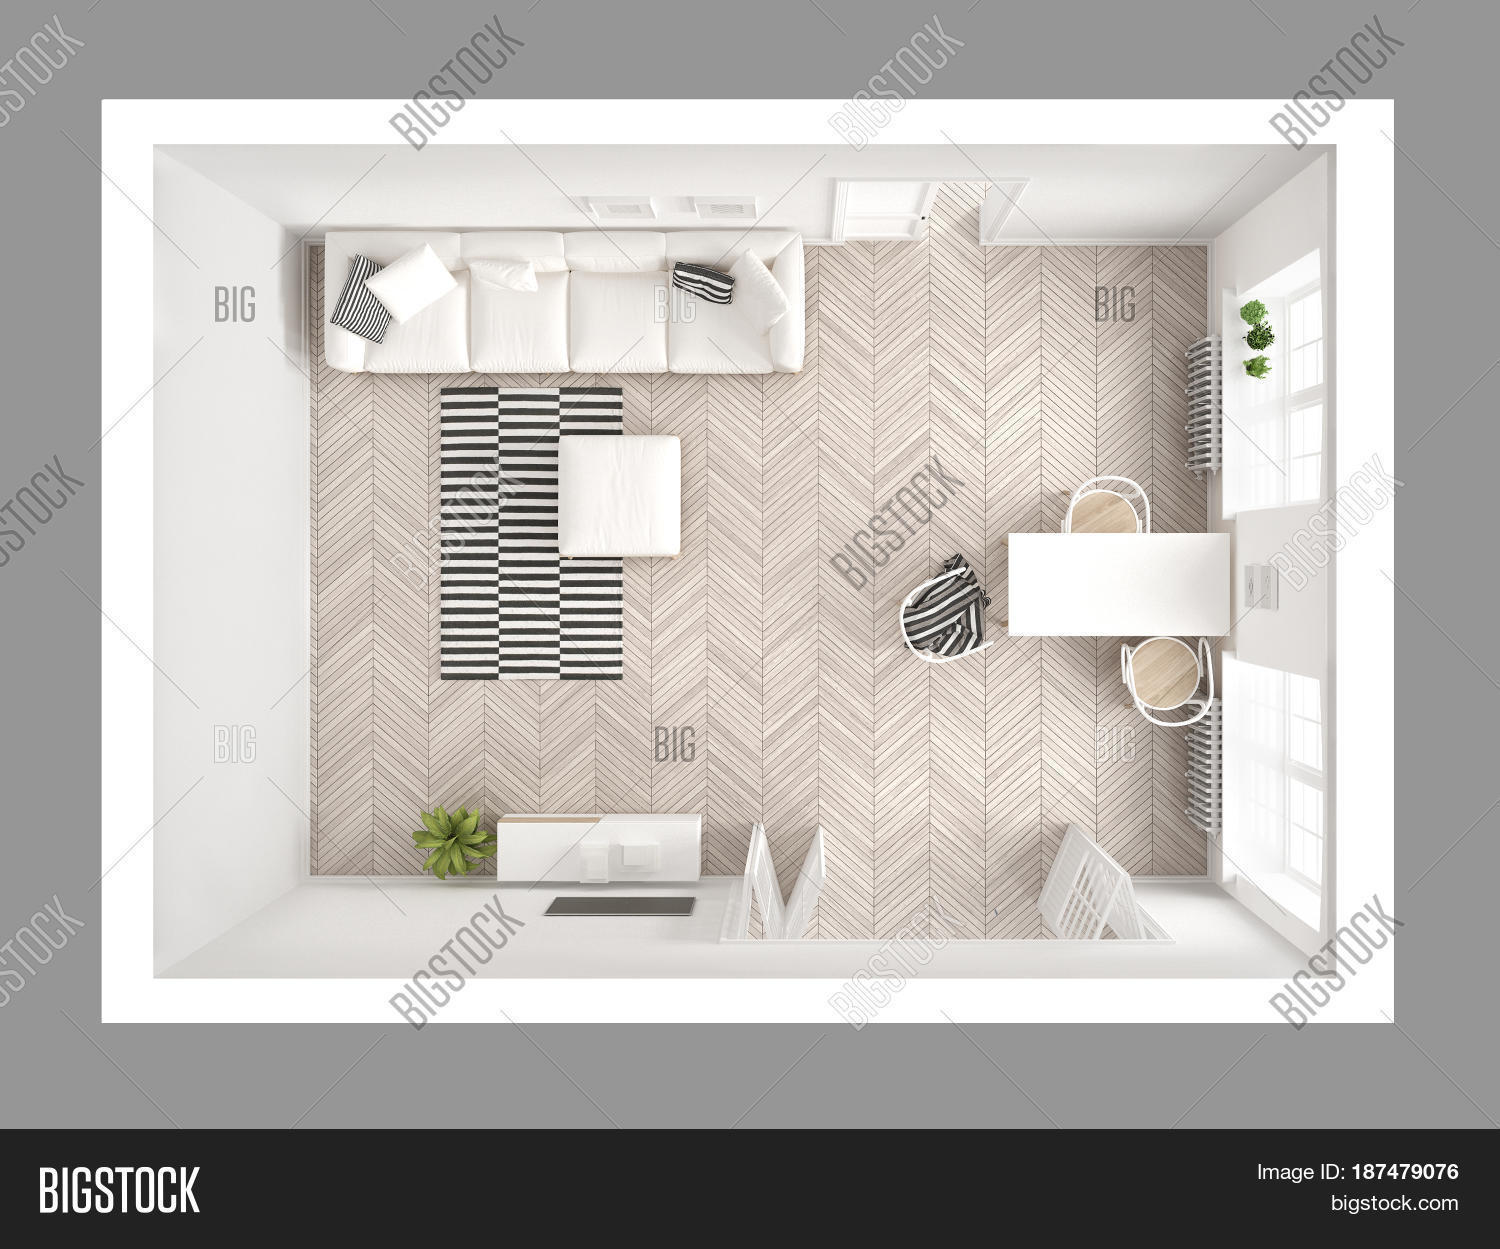 living room top view bright minimalist image amp photo free trial bigstock 14256